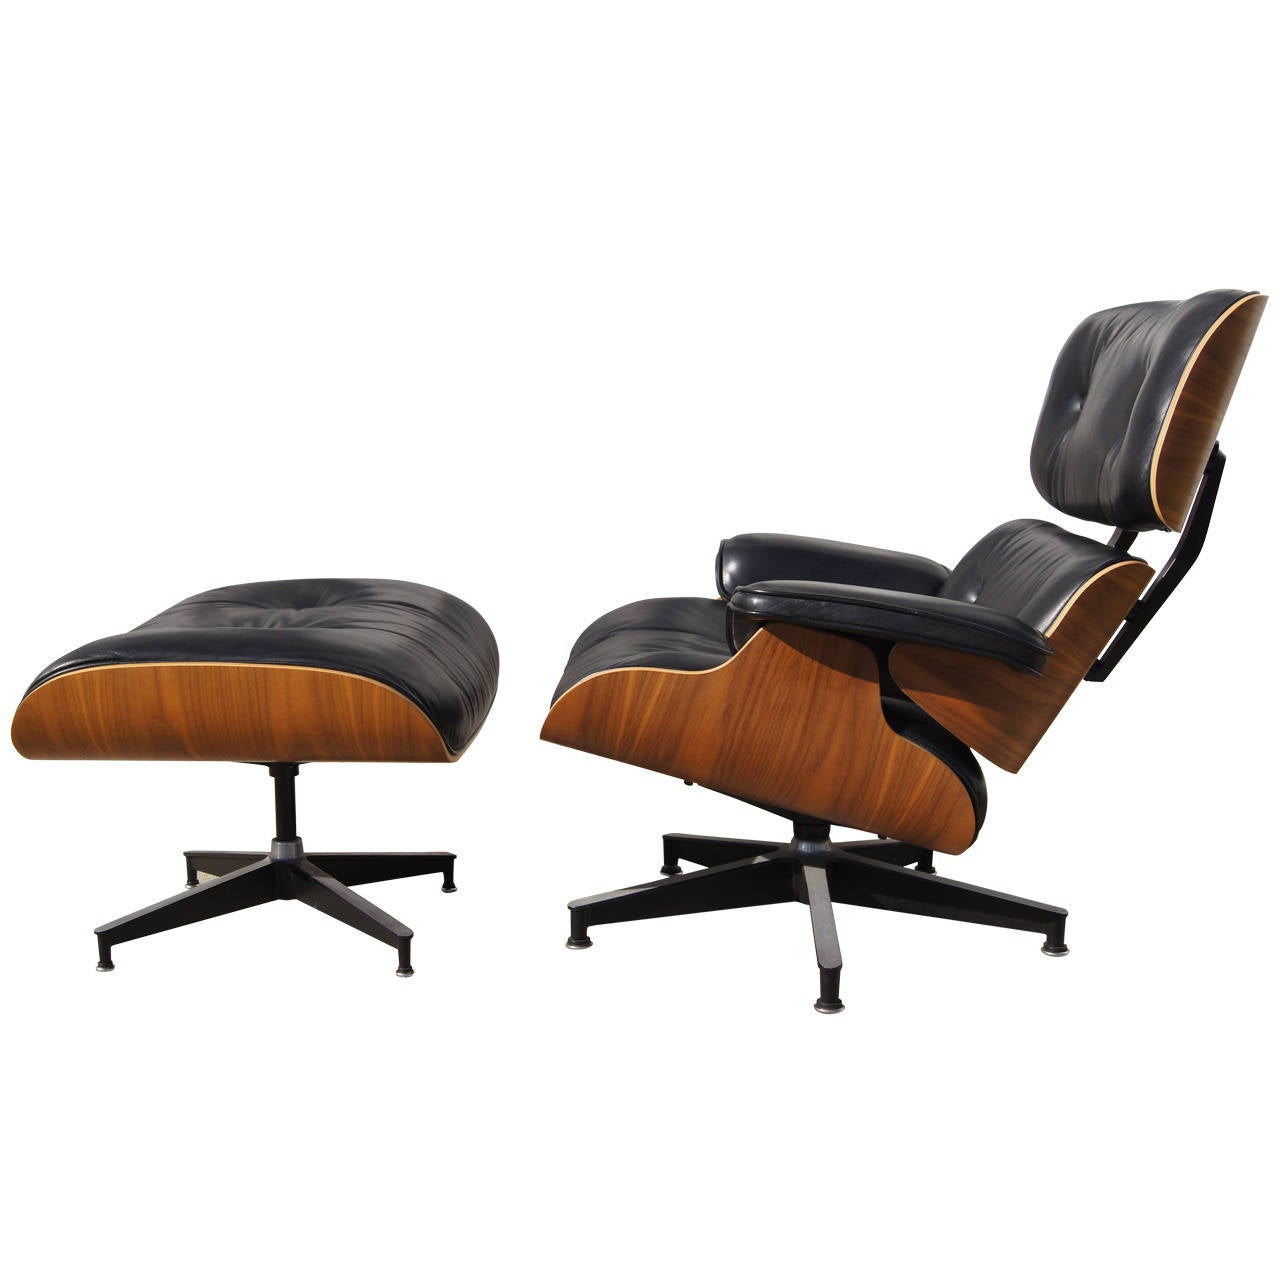 lounge chair and ottoman by eames for herman miller model 670 671 at 1stdibs. Black Bedroom Furniture Sets. Home Design Ideas